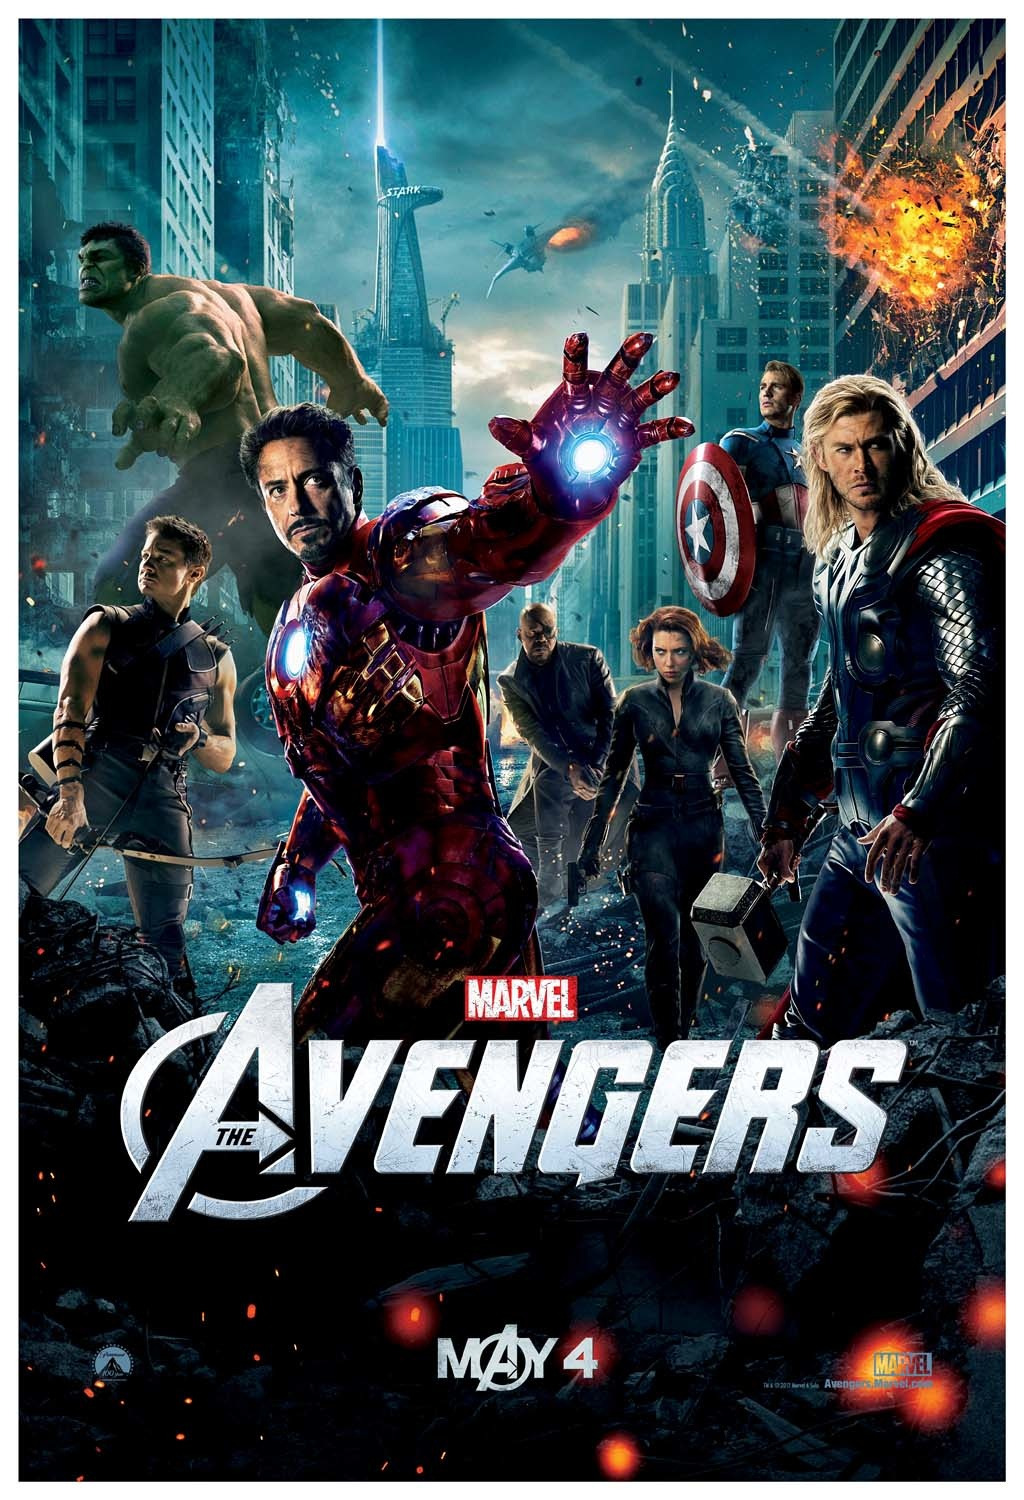 Avengers best movie